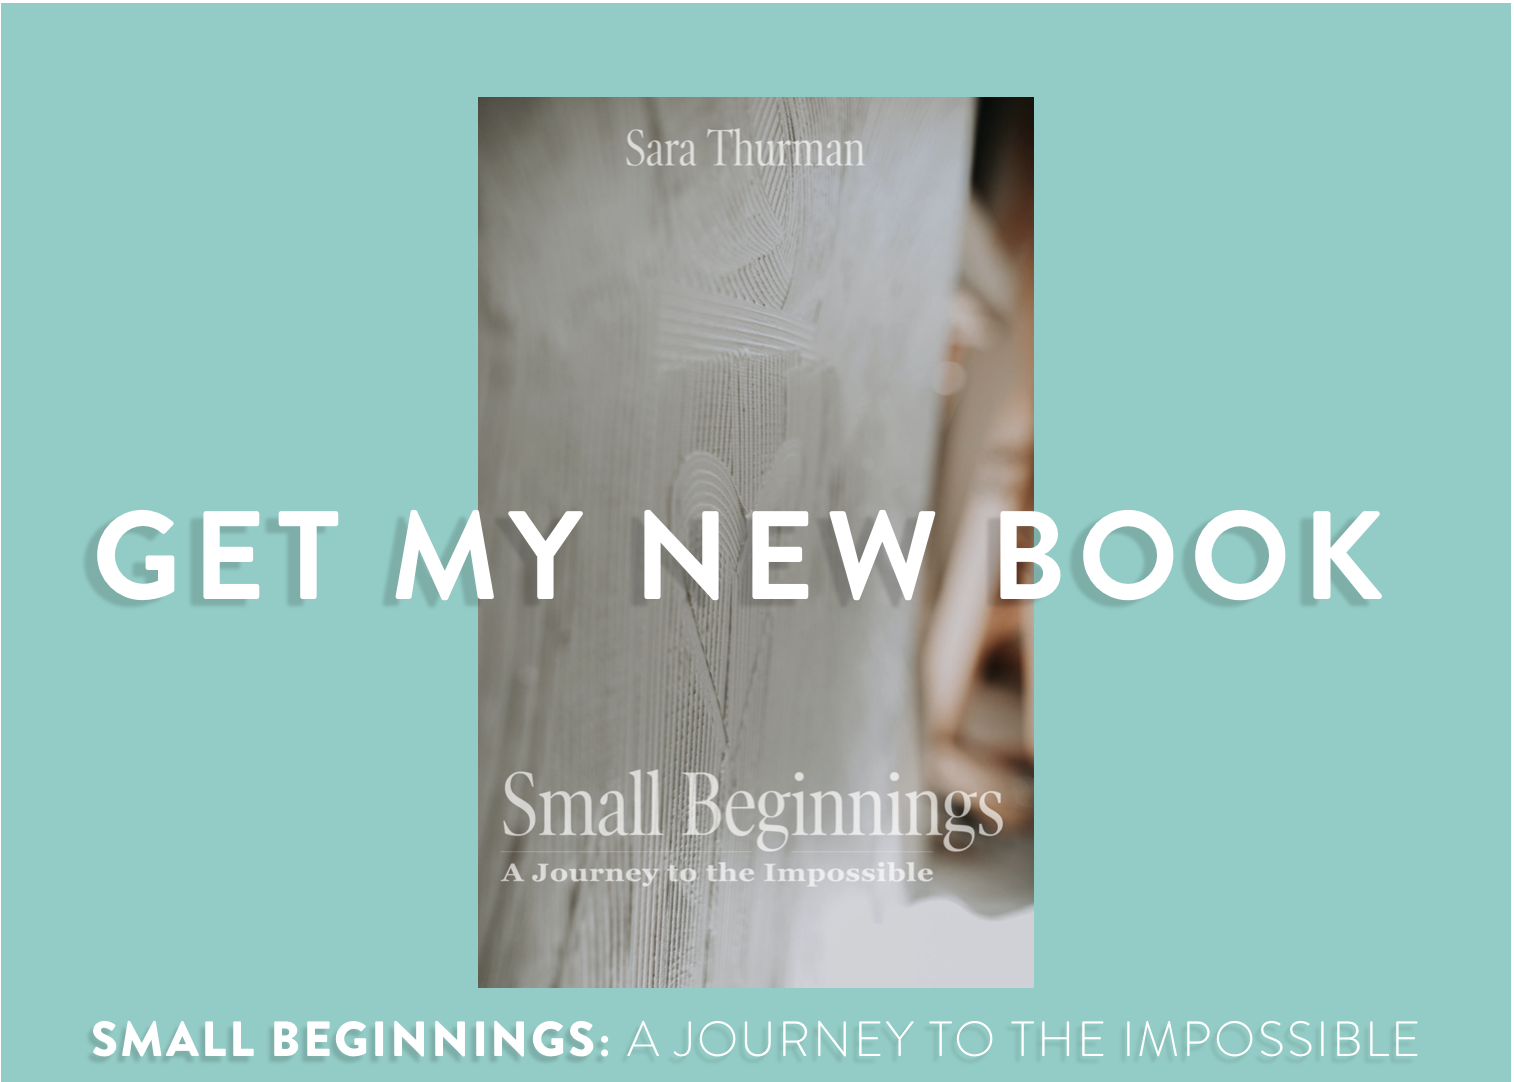 Small+Beginnings+book+cover.jpg